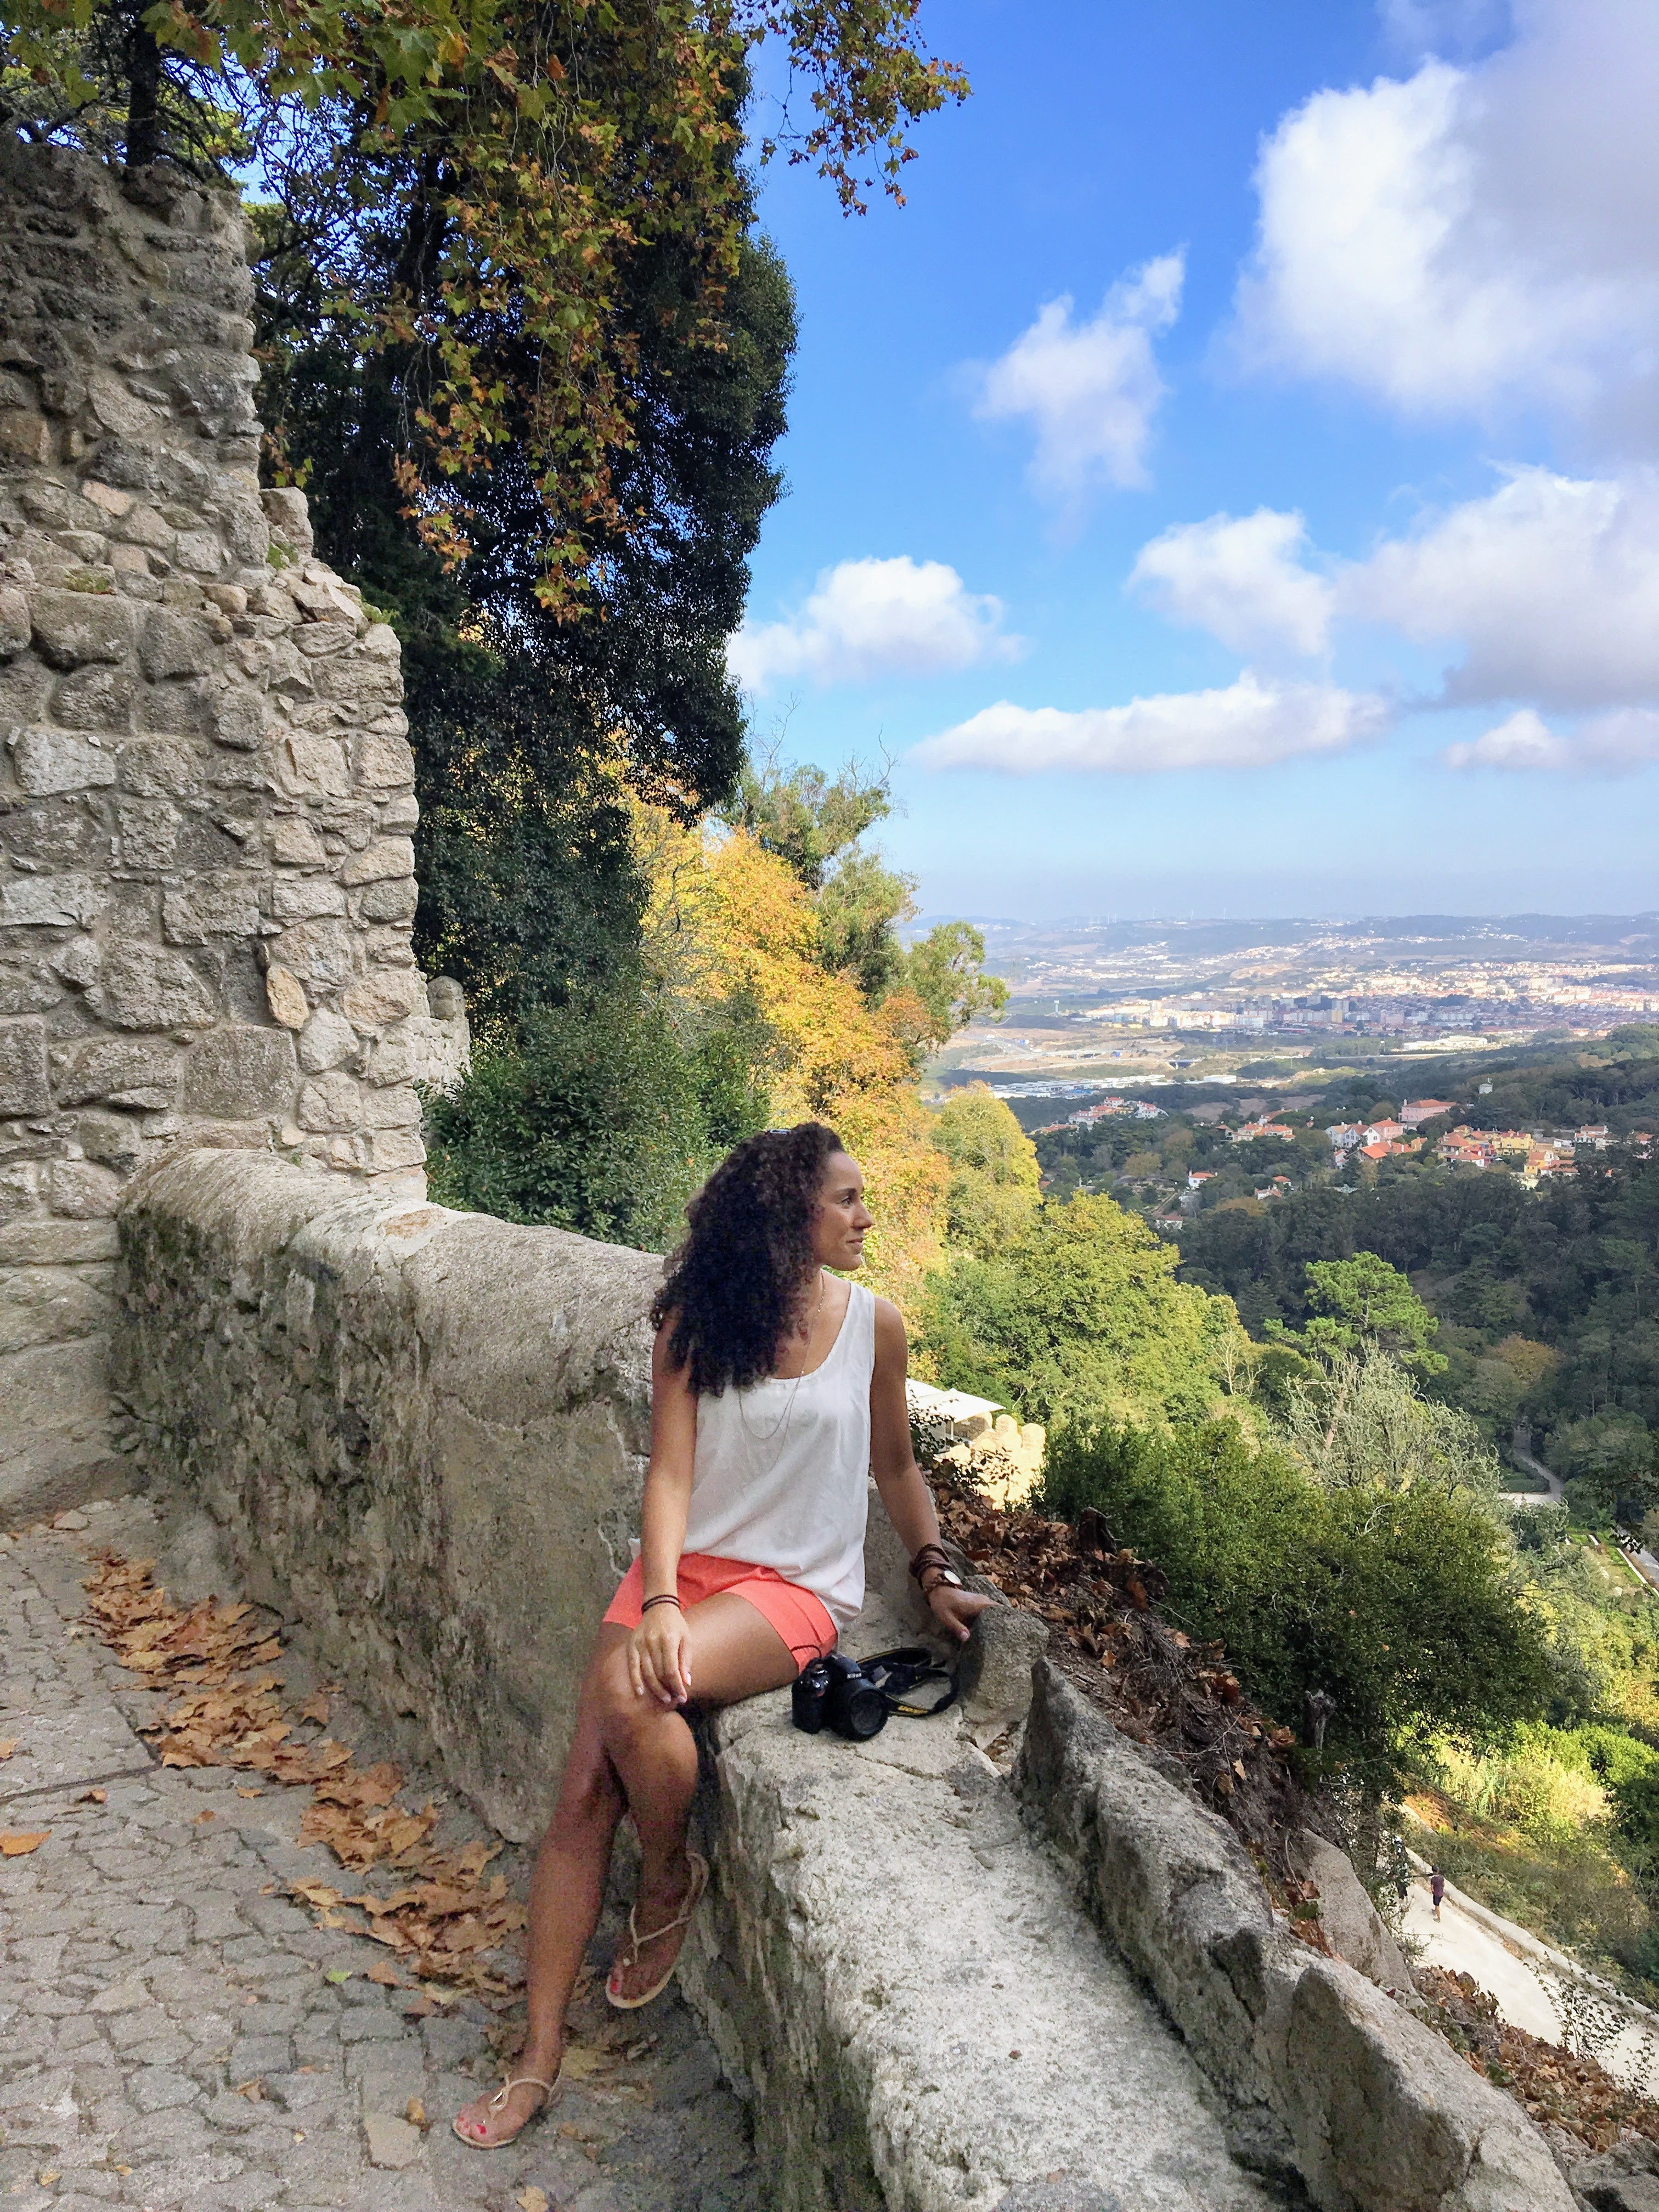 Panoramic view from the Moorish castle in Sintra, Portugal